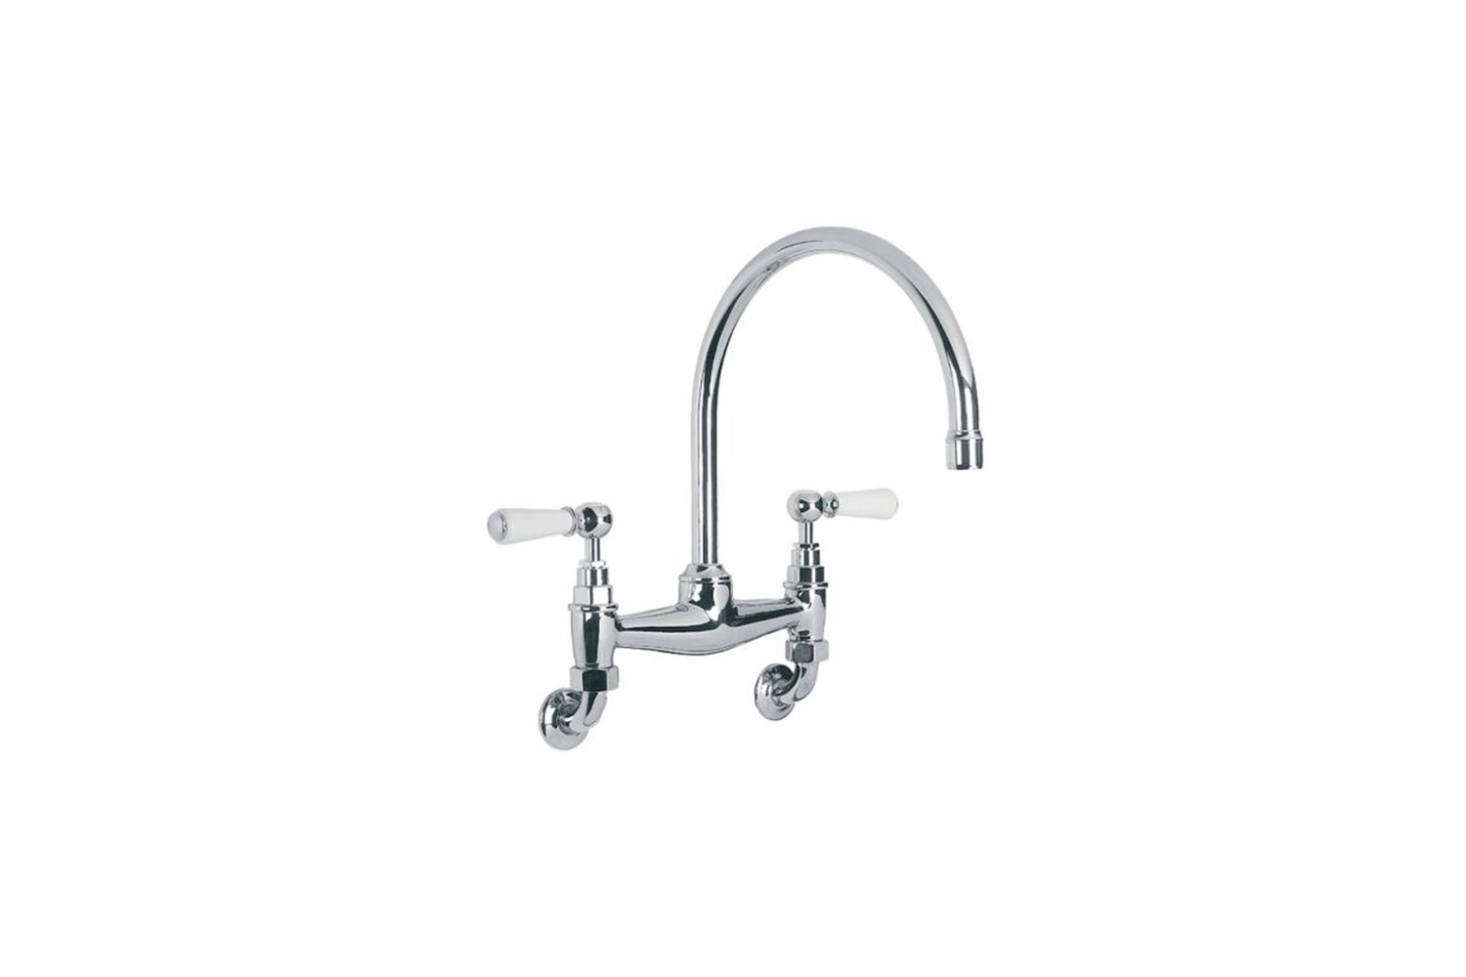 The Lefroy Brooks White Ceramic Lever Kitchen Bridge Mixer is $787.50 at Quality Bath.